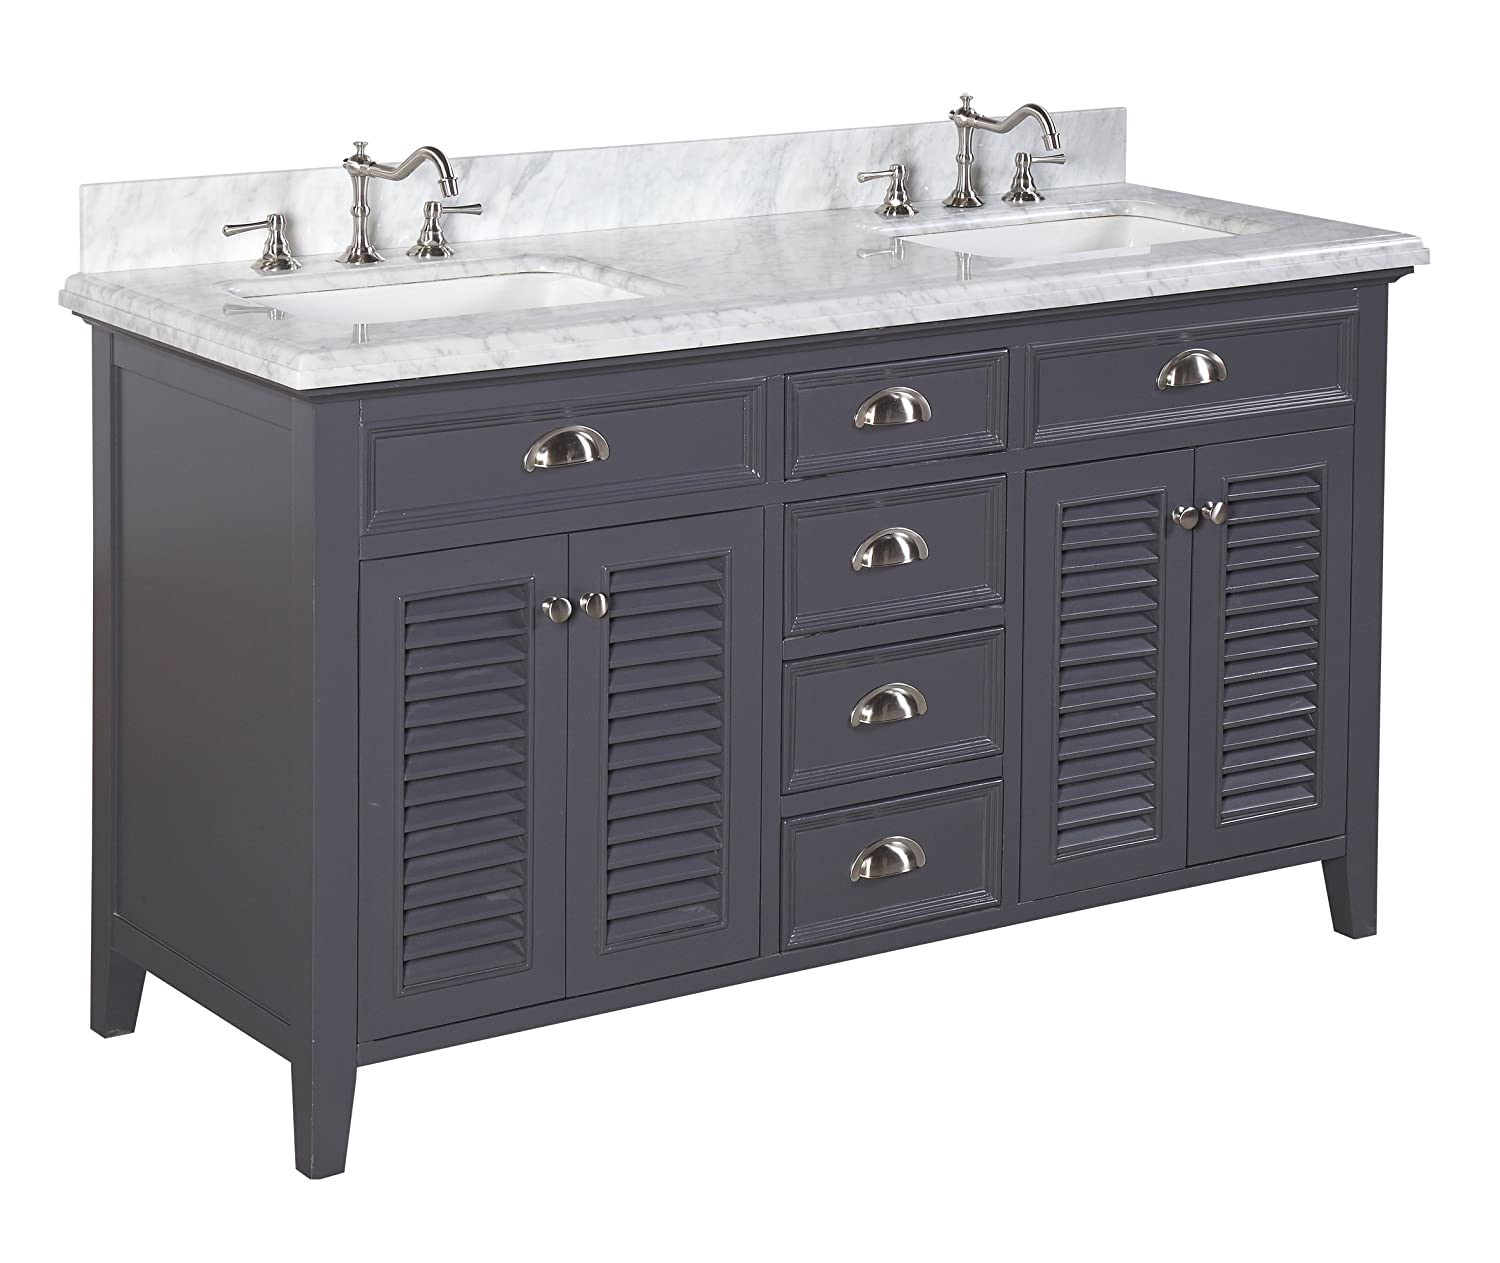 durable modeling kitchen bath collection kbc sh602gycarr